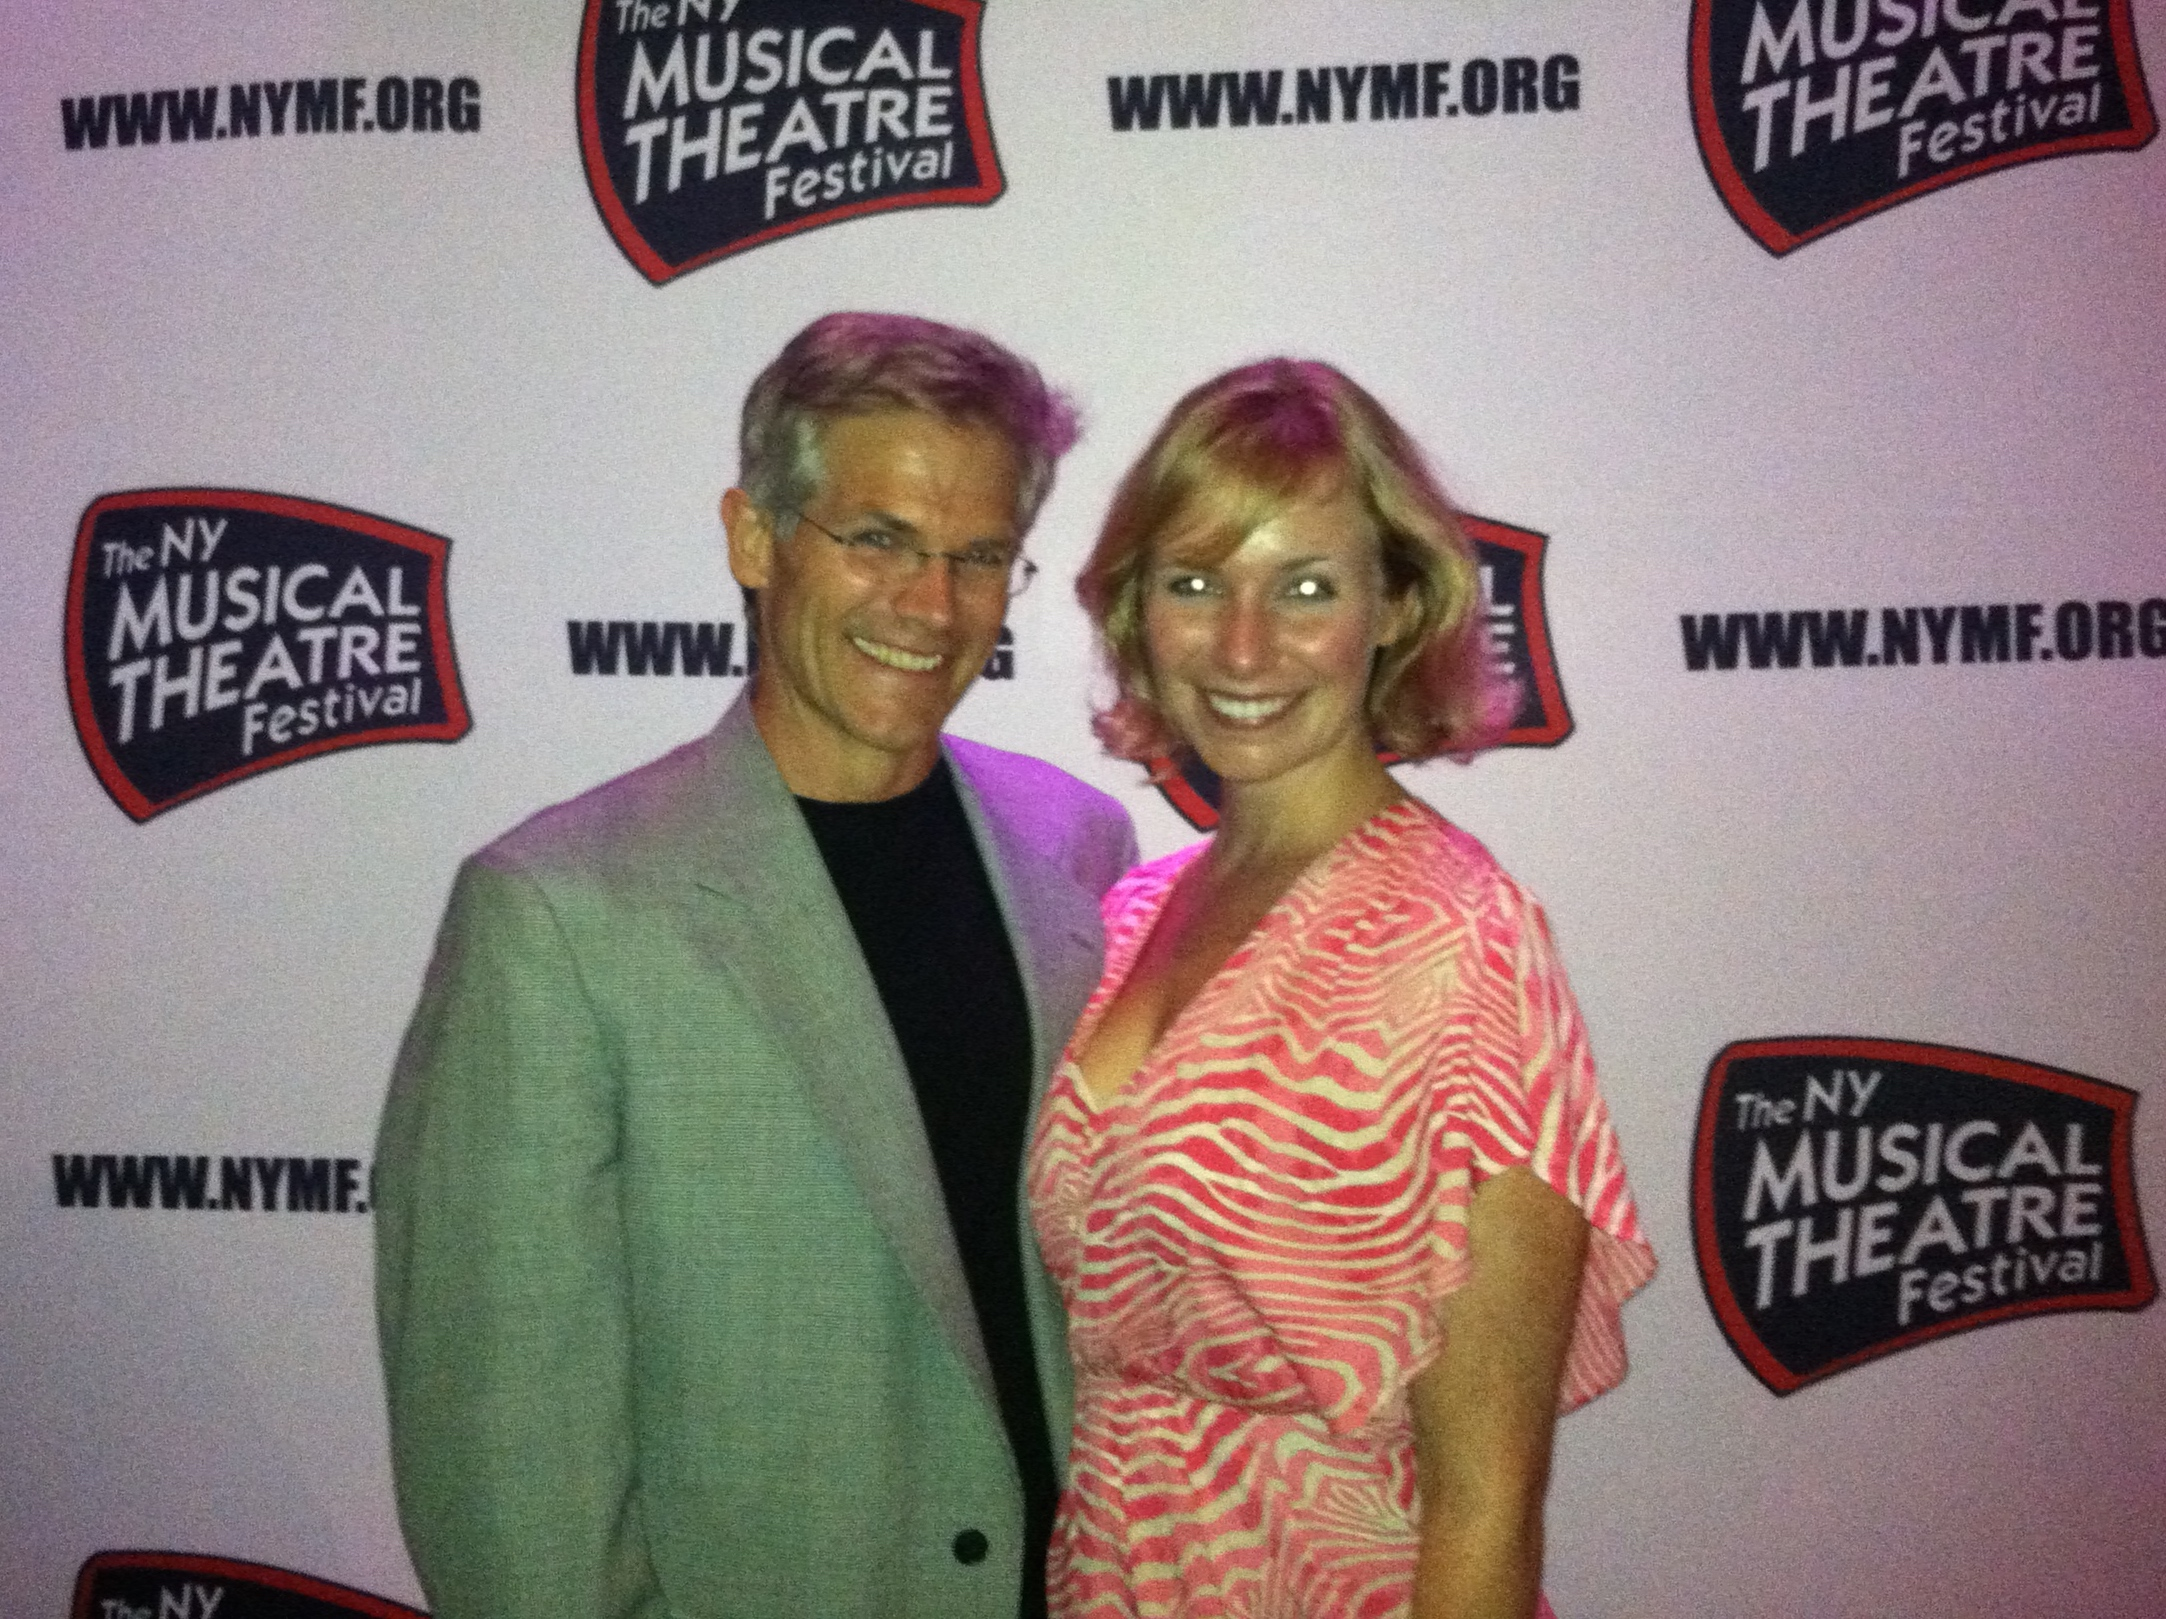 Opening night of New York Musical Theater Festival, with Playwright (and father) Dana Yeaton.  NYC, 2012